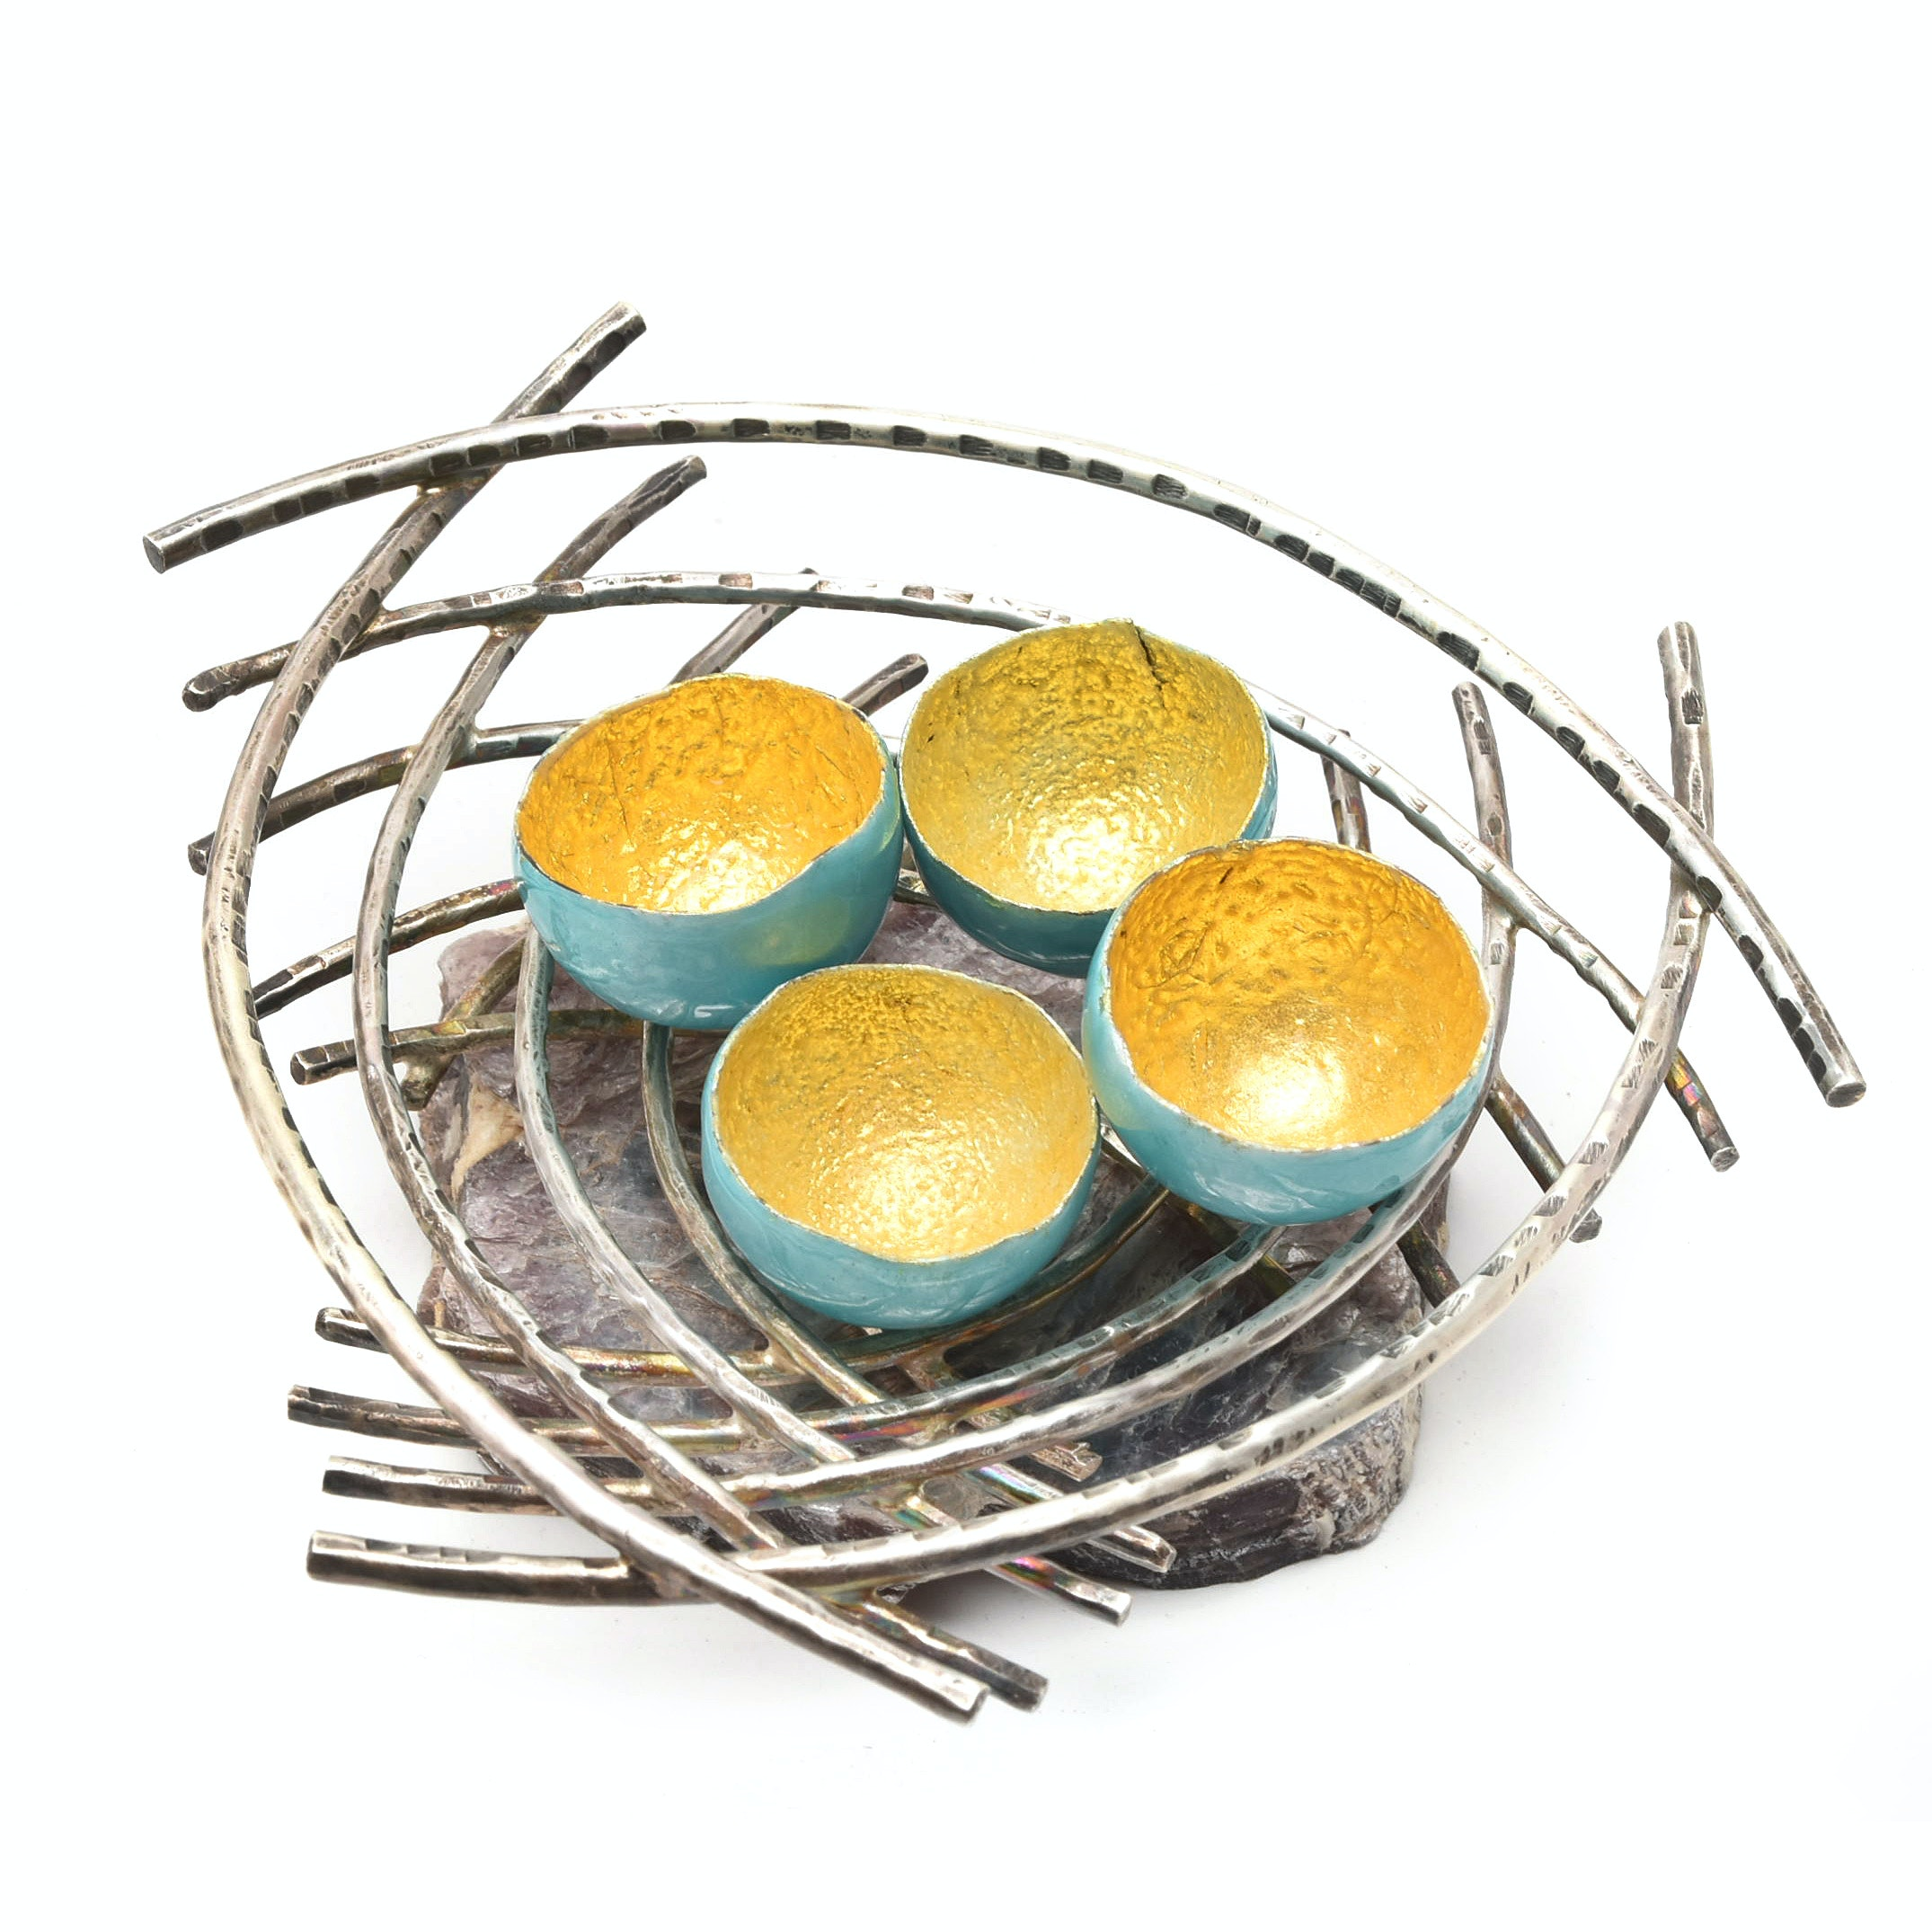 Hand Fabricated Sterling Silver Nest with Enamel and Gold Foil Eggs by P. Hackim